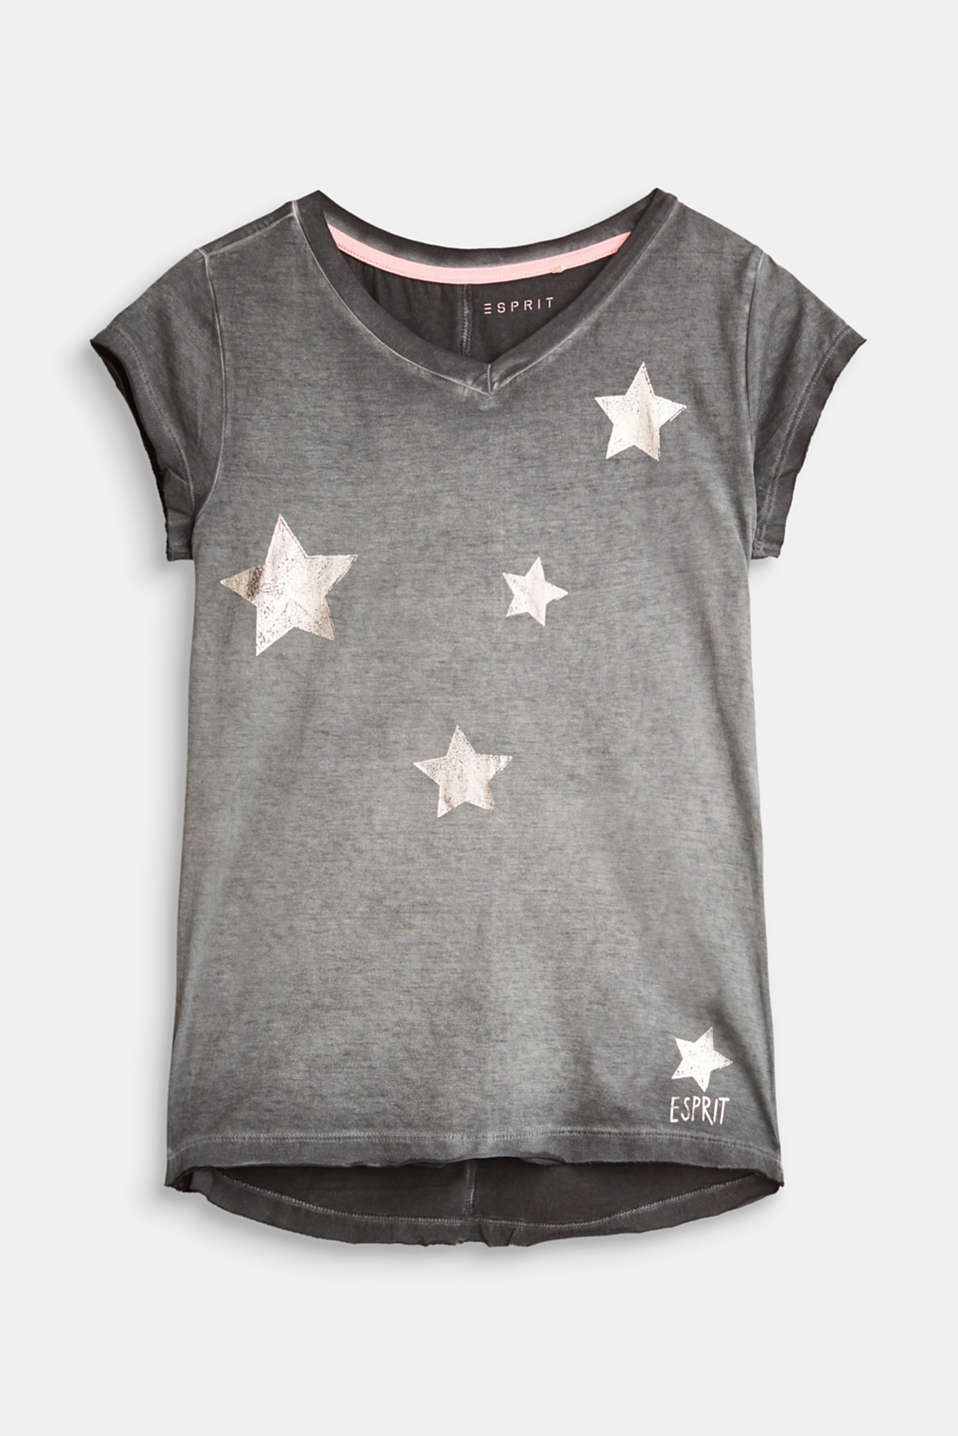 Esprit - Vintage T-shirt with shiny stars